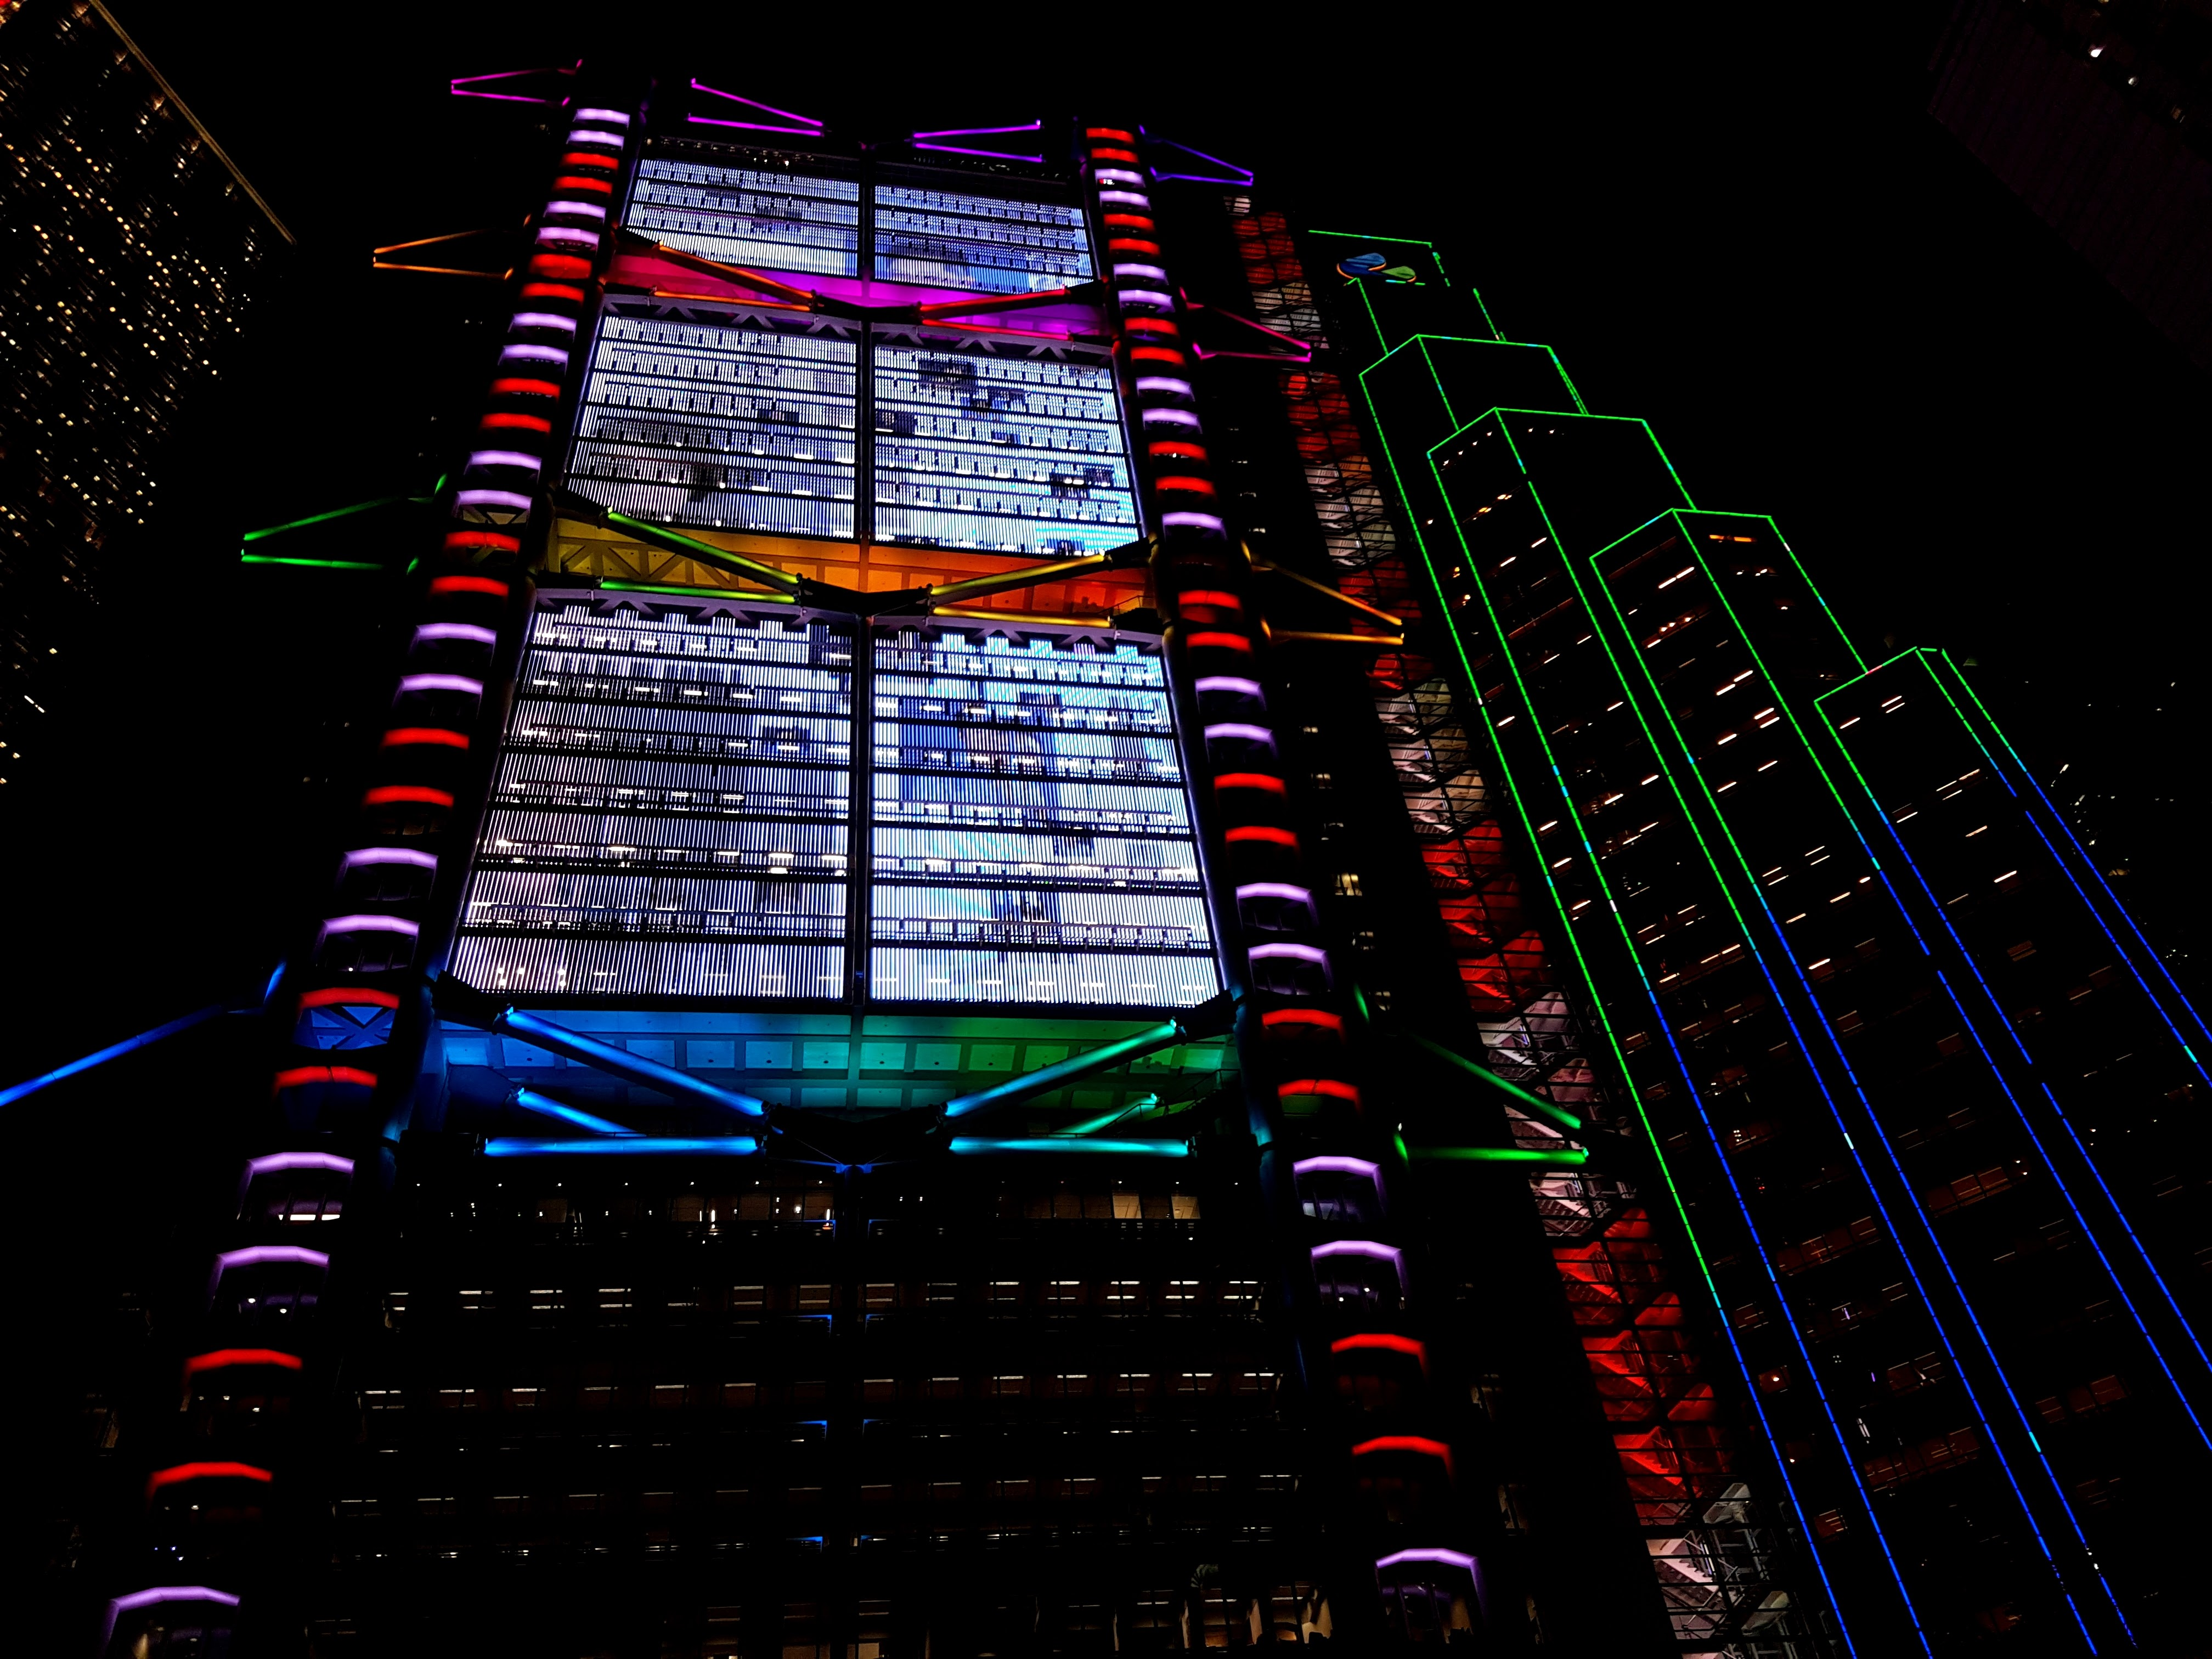 The HSBC building lit up during the Lumieres HK Festival